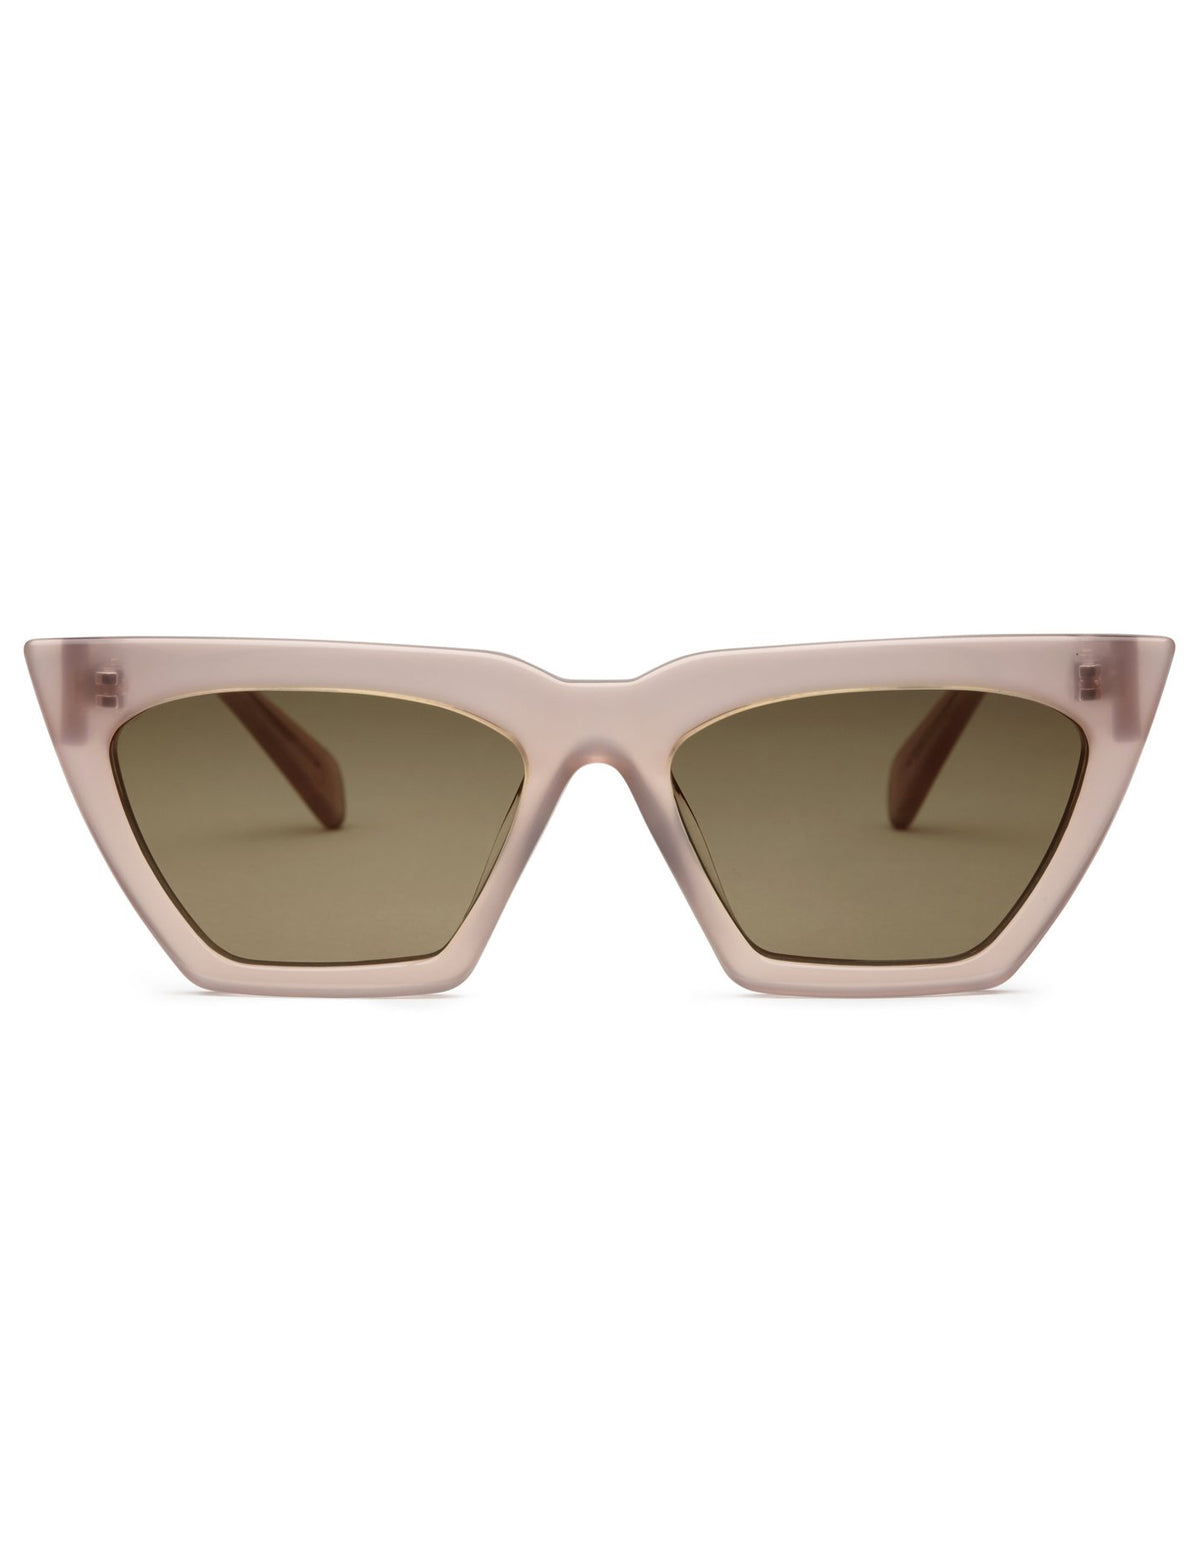 Carla Colour Modan Sunglasses Champis